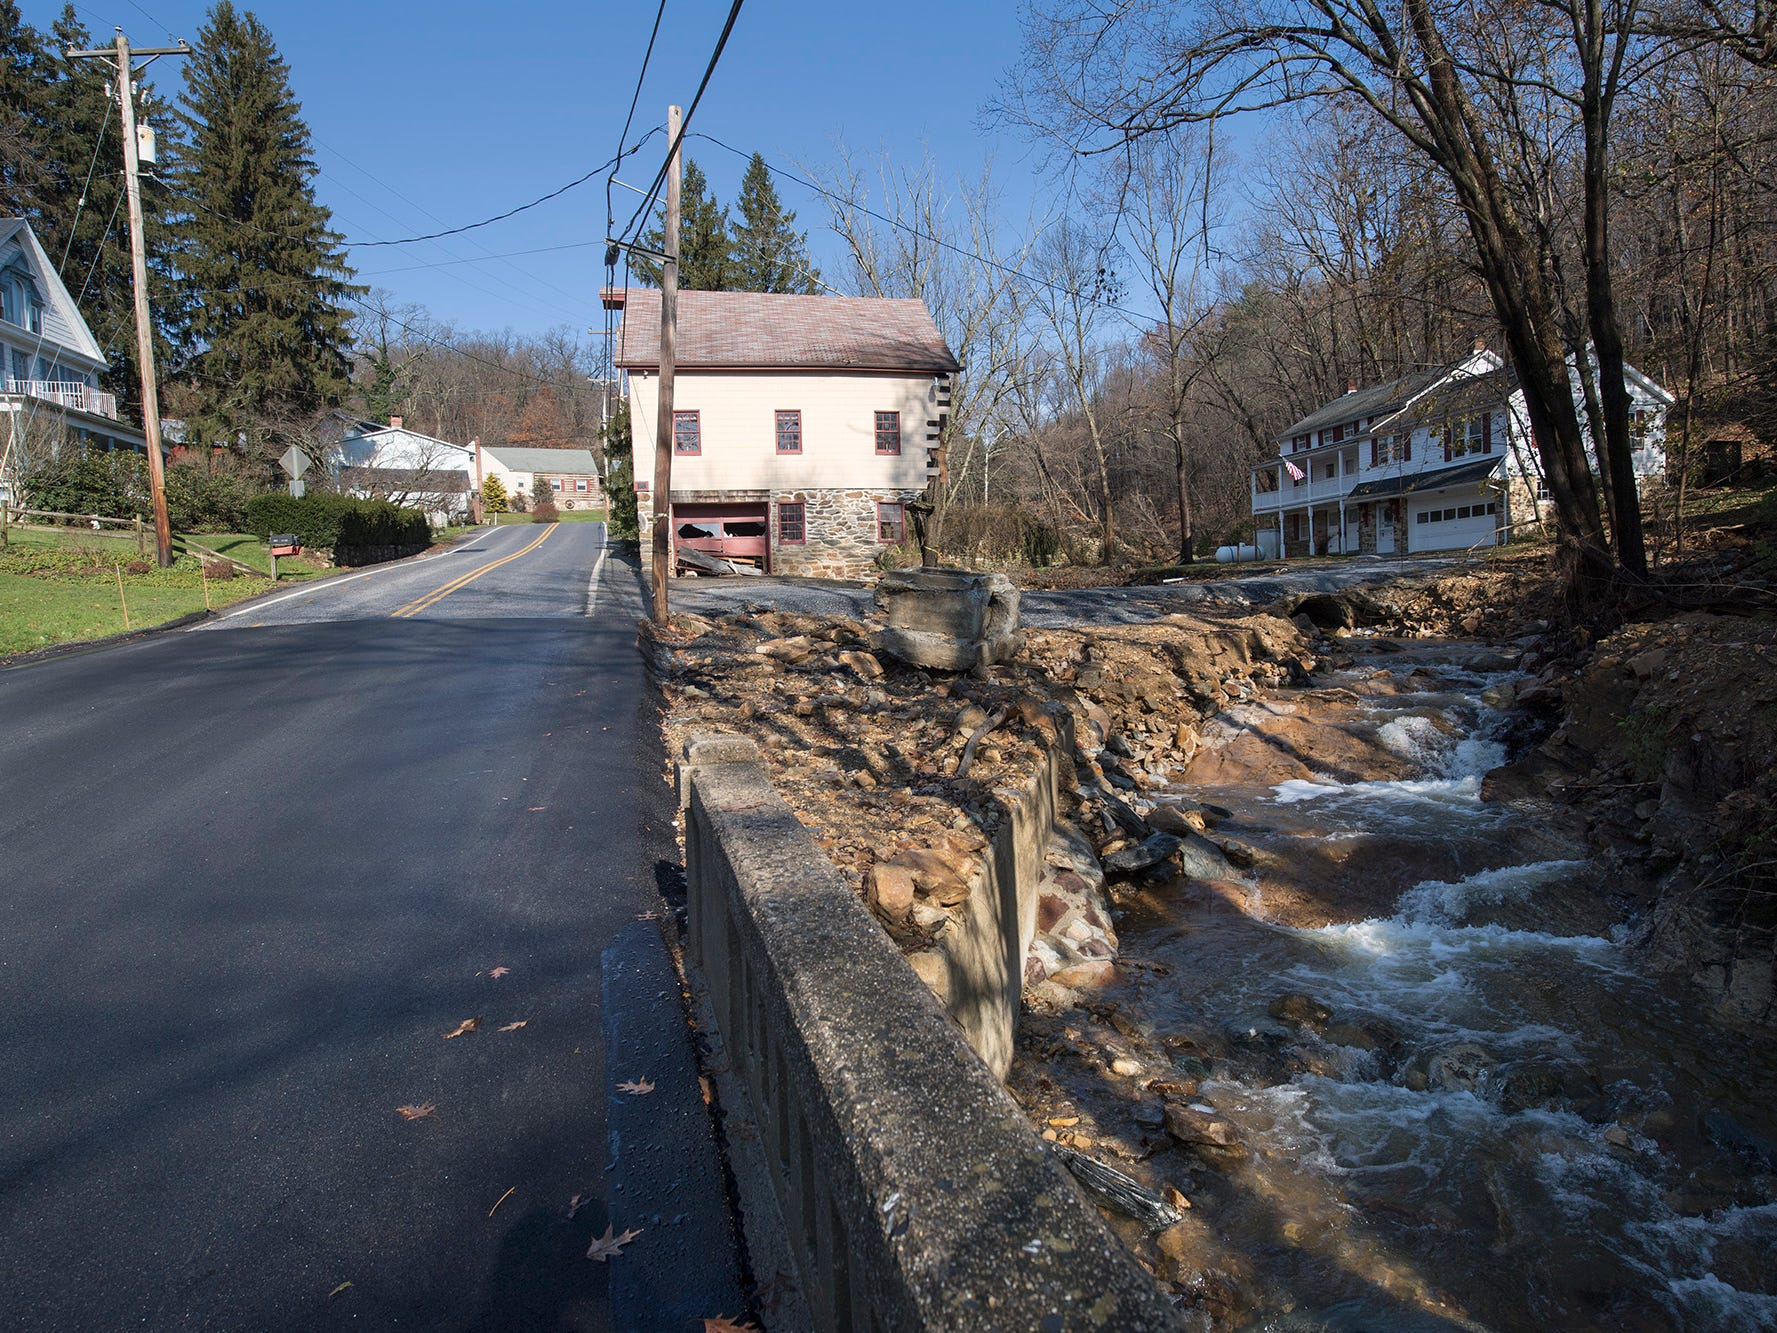 A repaired road where a stone barn was damaged on Kreutz Creek Road in Hellam Township on Sunday November 25, 2018.